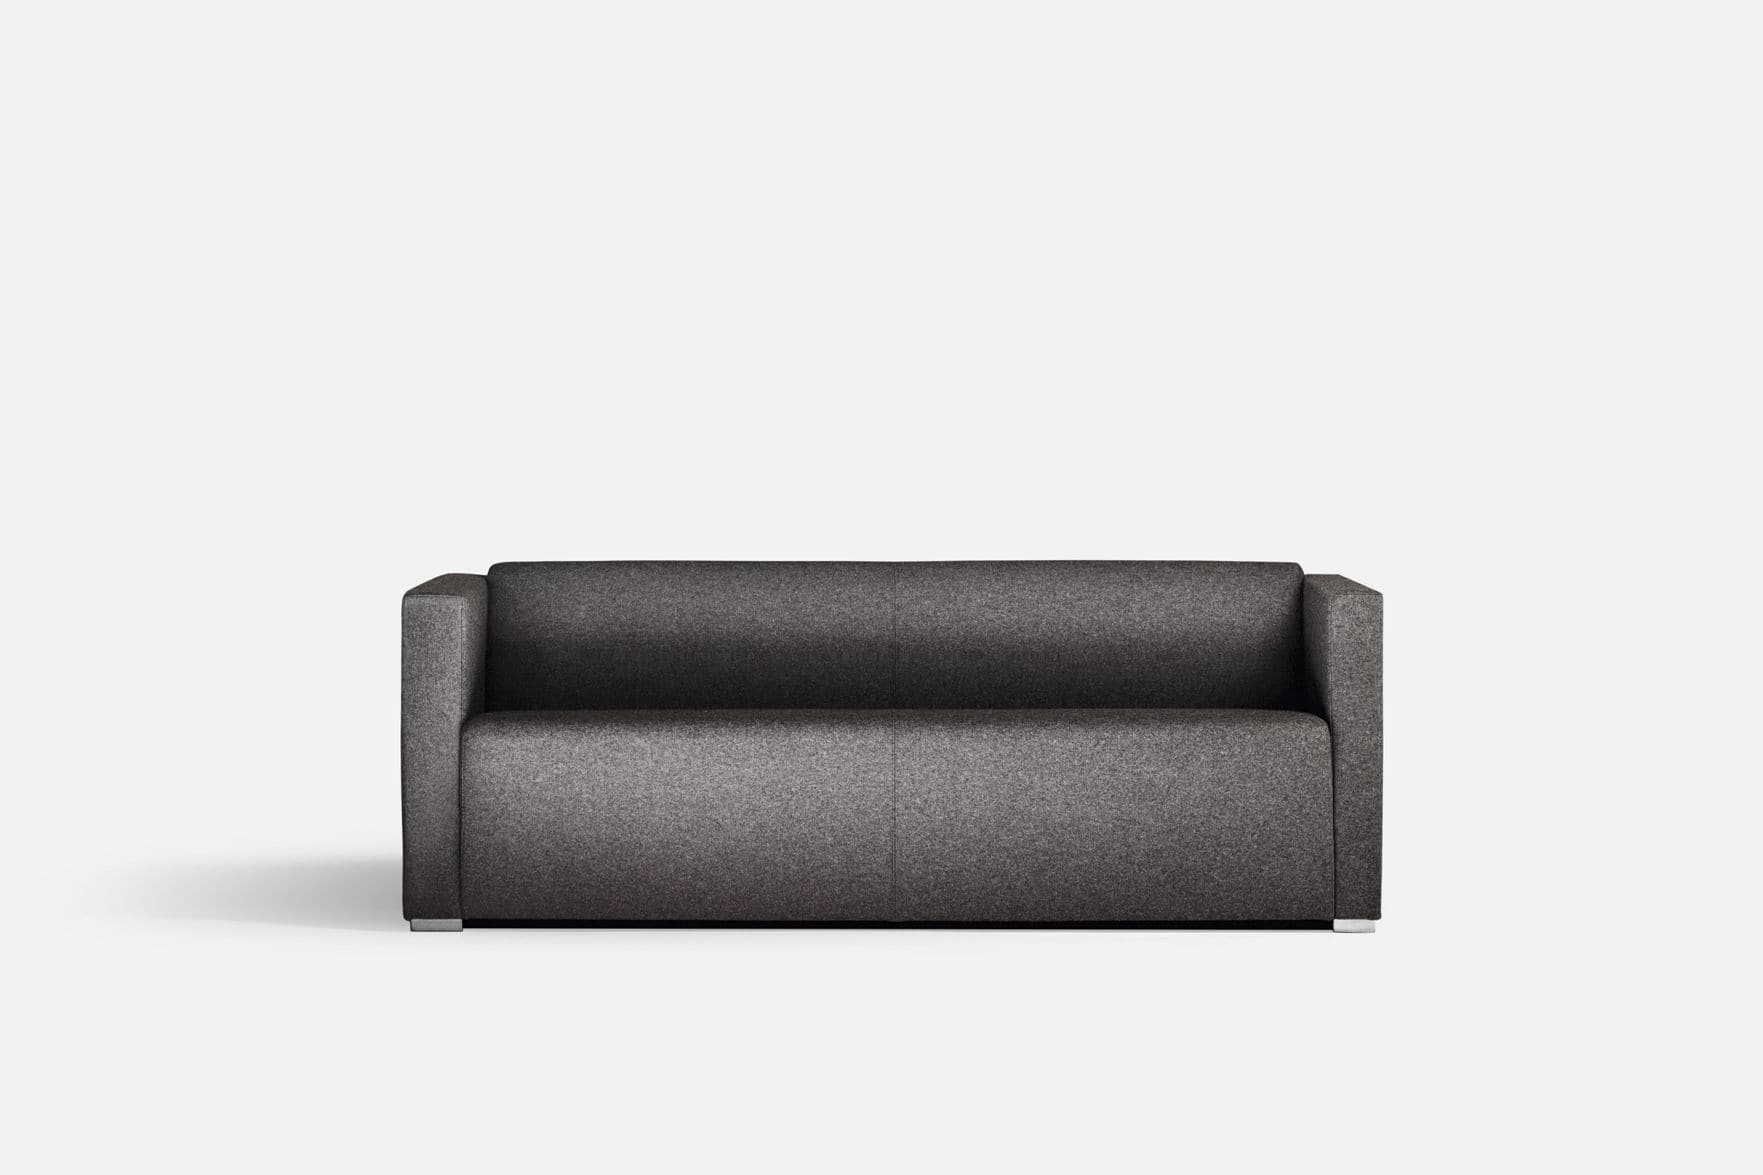 Cubus Online Shop Contemporary Sofa Leather Fabric For Public Buildings